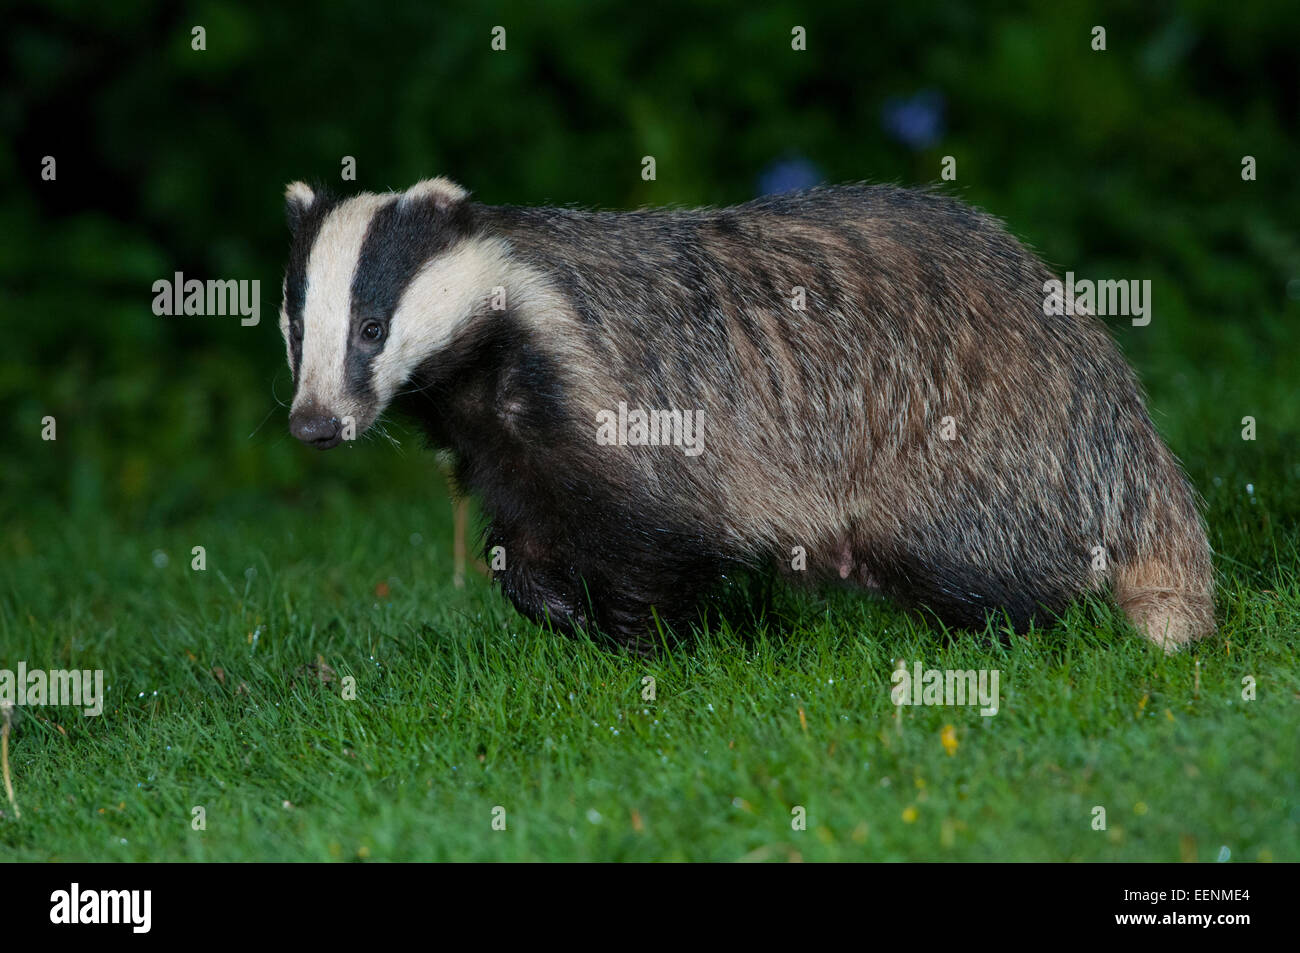 A female badger at night in suburban garden, Hastings, East Sussex, UK - Stock Image